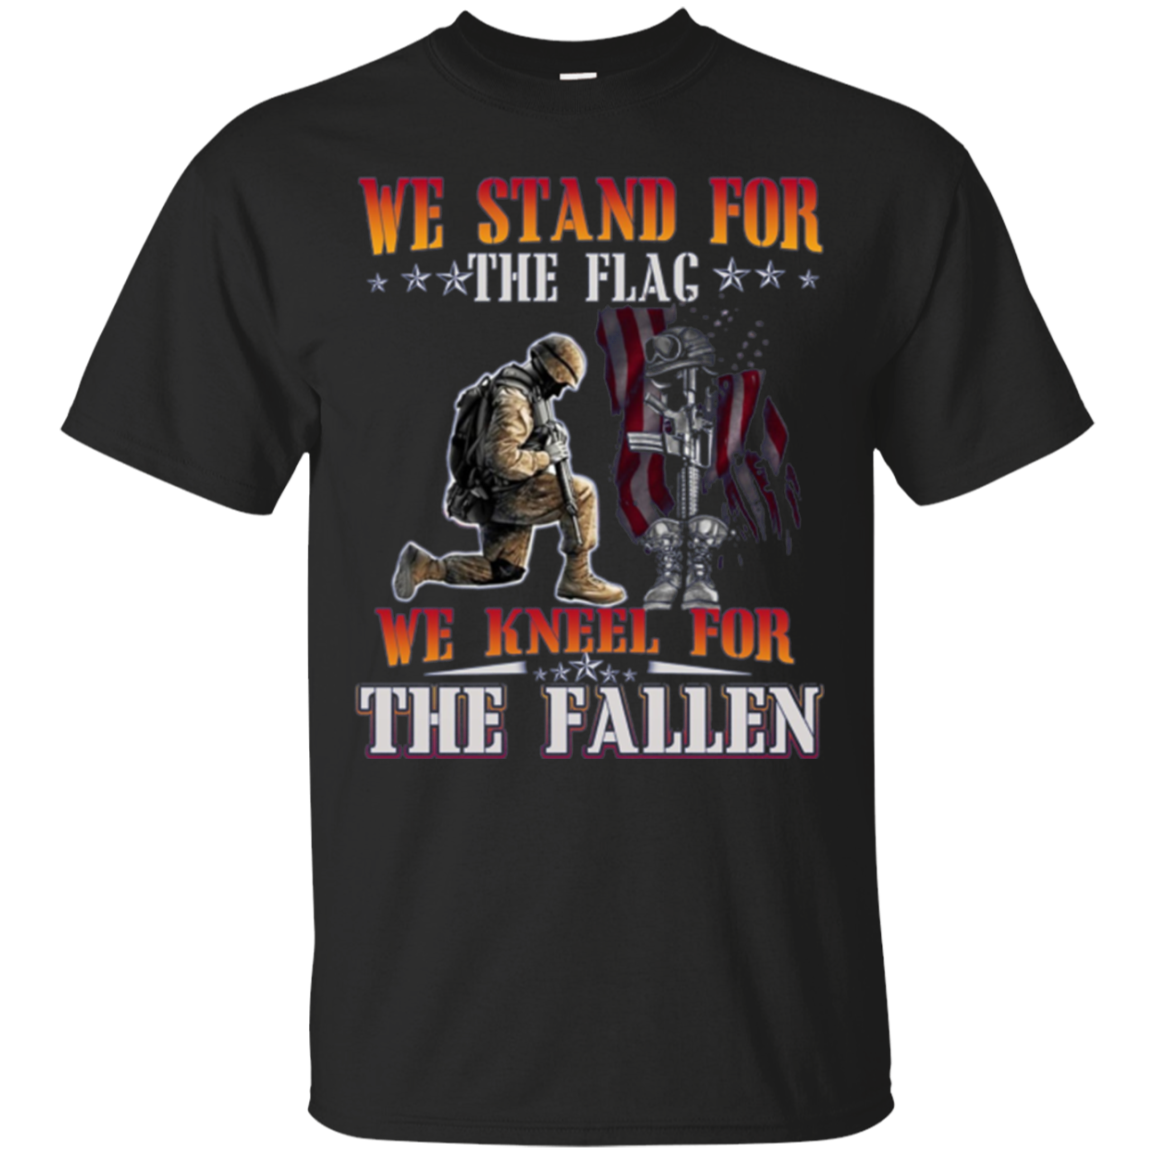 We Stand For The Flag T Shirt We Kneel For the Fallen